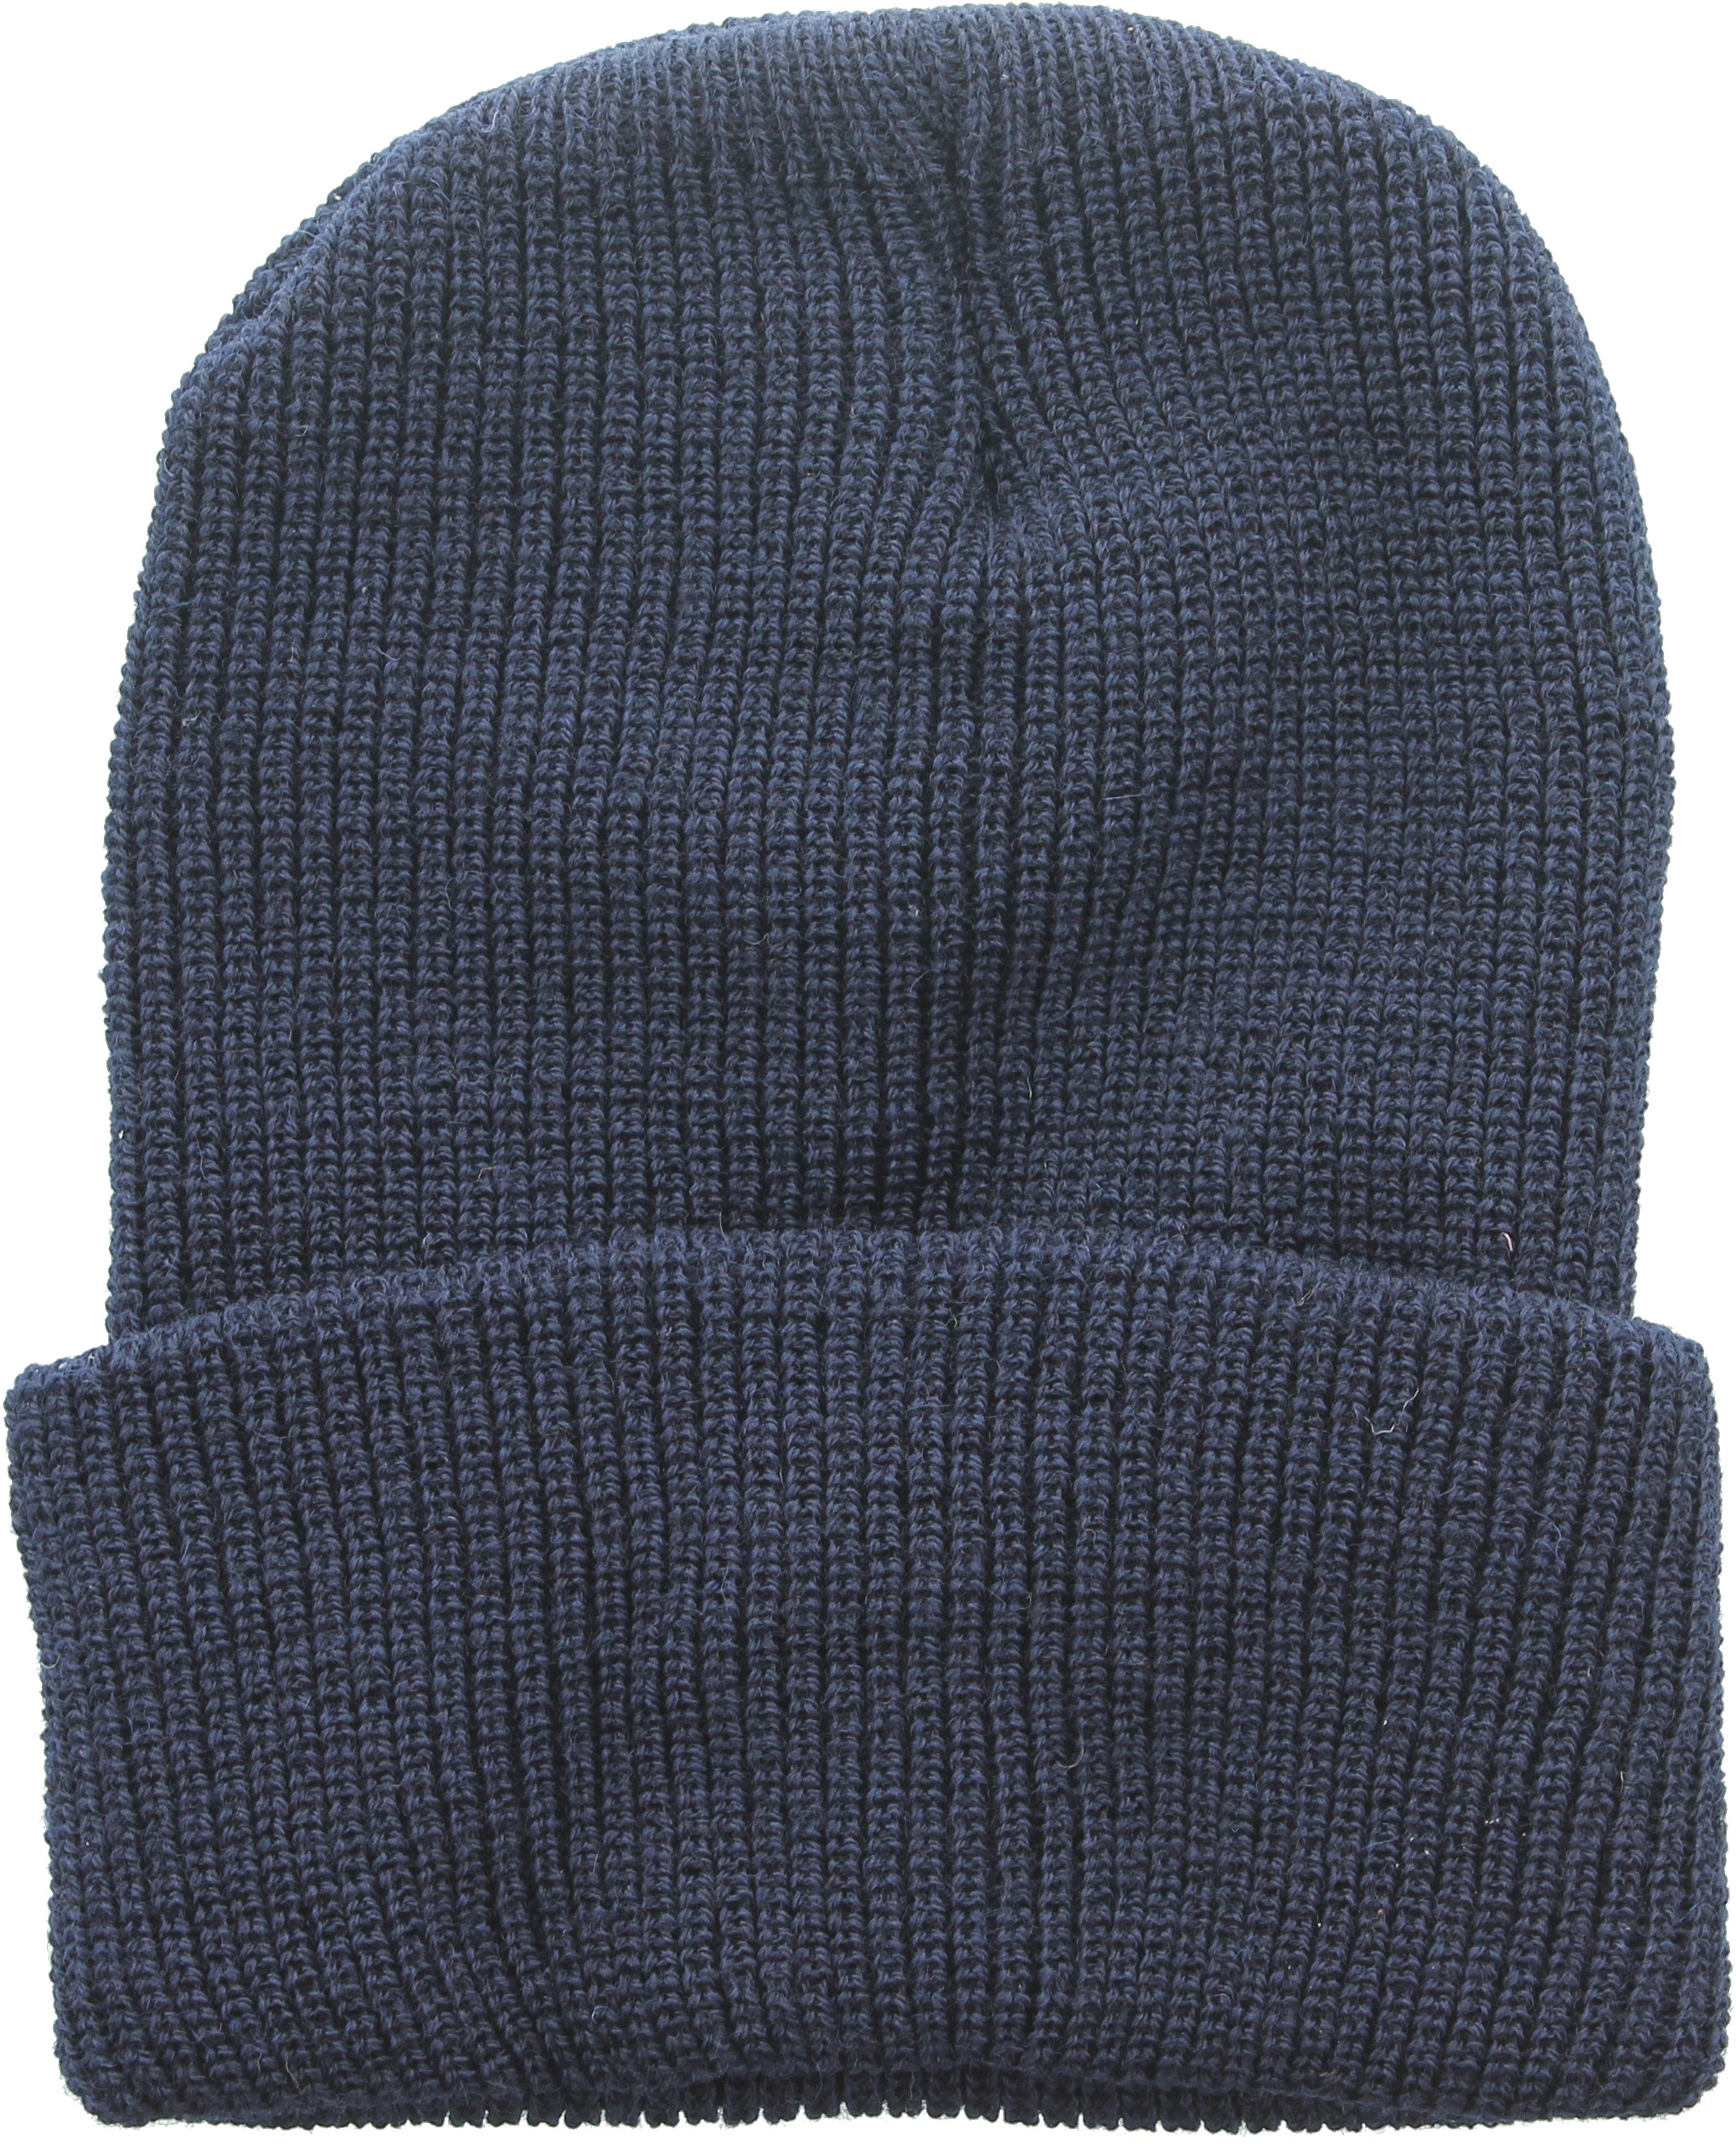 Heavyweight Worsted Wool Thick Ribbed Watch Cap Hat USA Made 9e8f22cb4